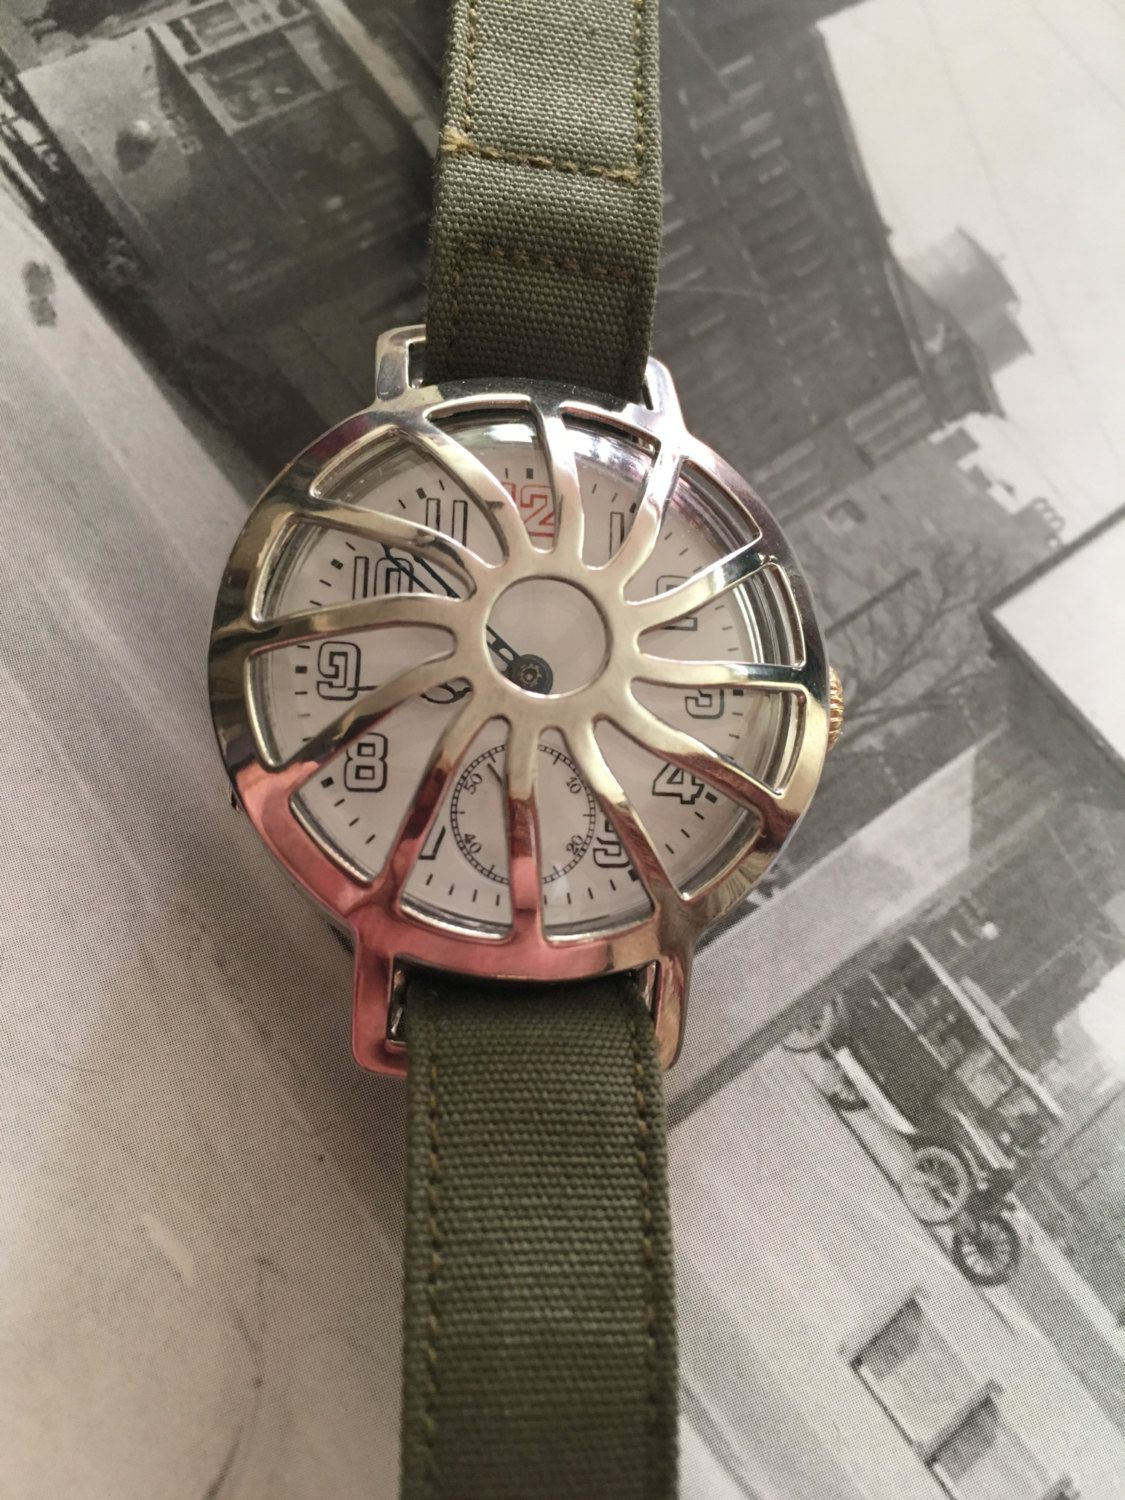 Antique 1915 Zenith Trench Watch All Original With Shrapnel Guard Dazzle Diamond Coating Serviced And Running Great A True Beauty By Theoldwatchdoctor On Etsy